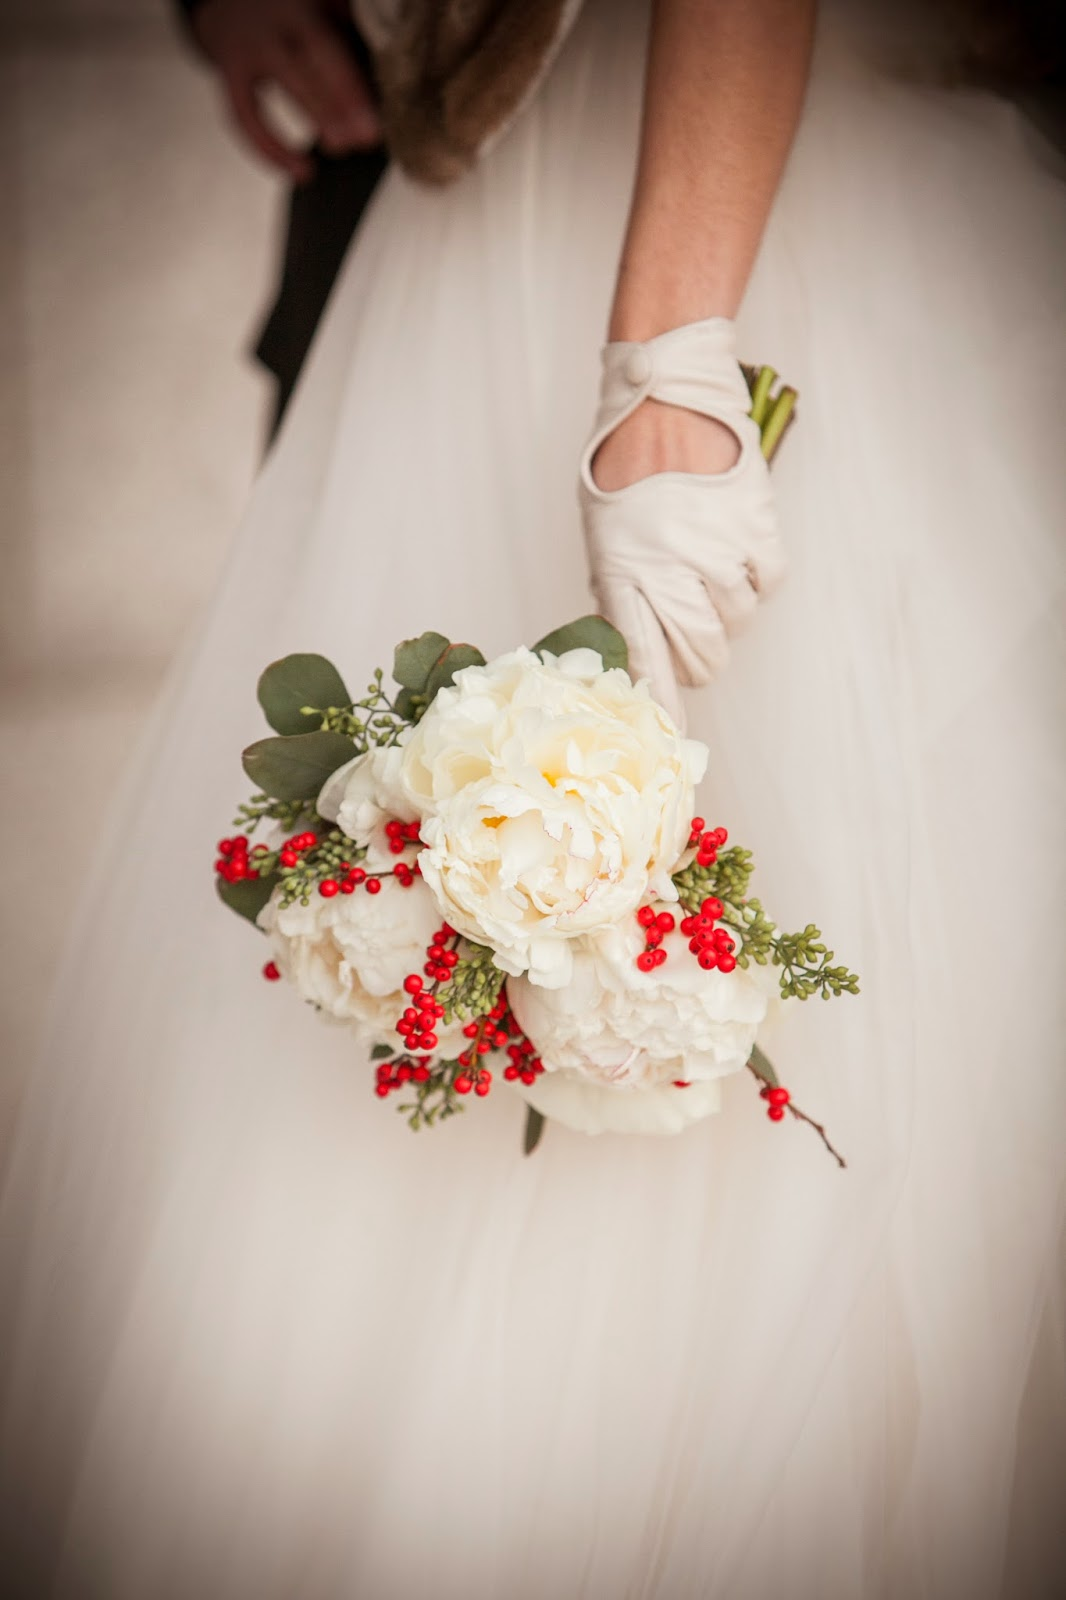 les fleurs : zev fisher photography : white peonies with red ilex berries : mink shrug : little white gloves